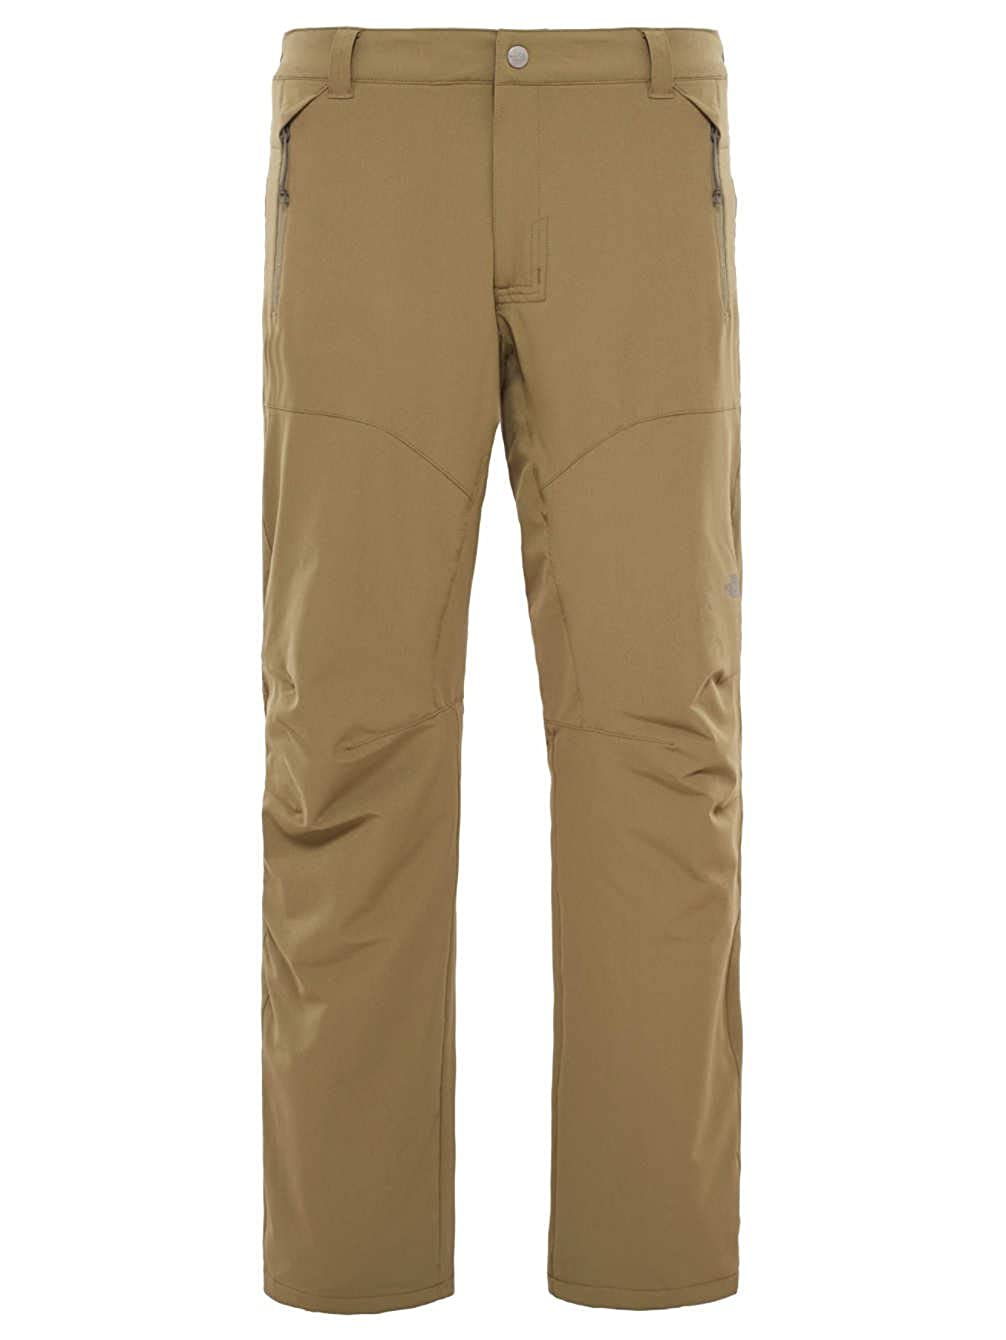 THE NORTH FACE Herren Outdoor Hose Rutland Insulated Outdoor Pants